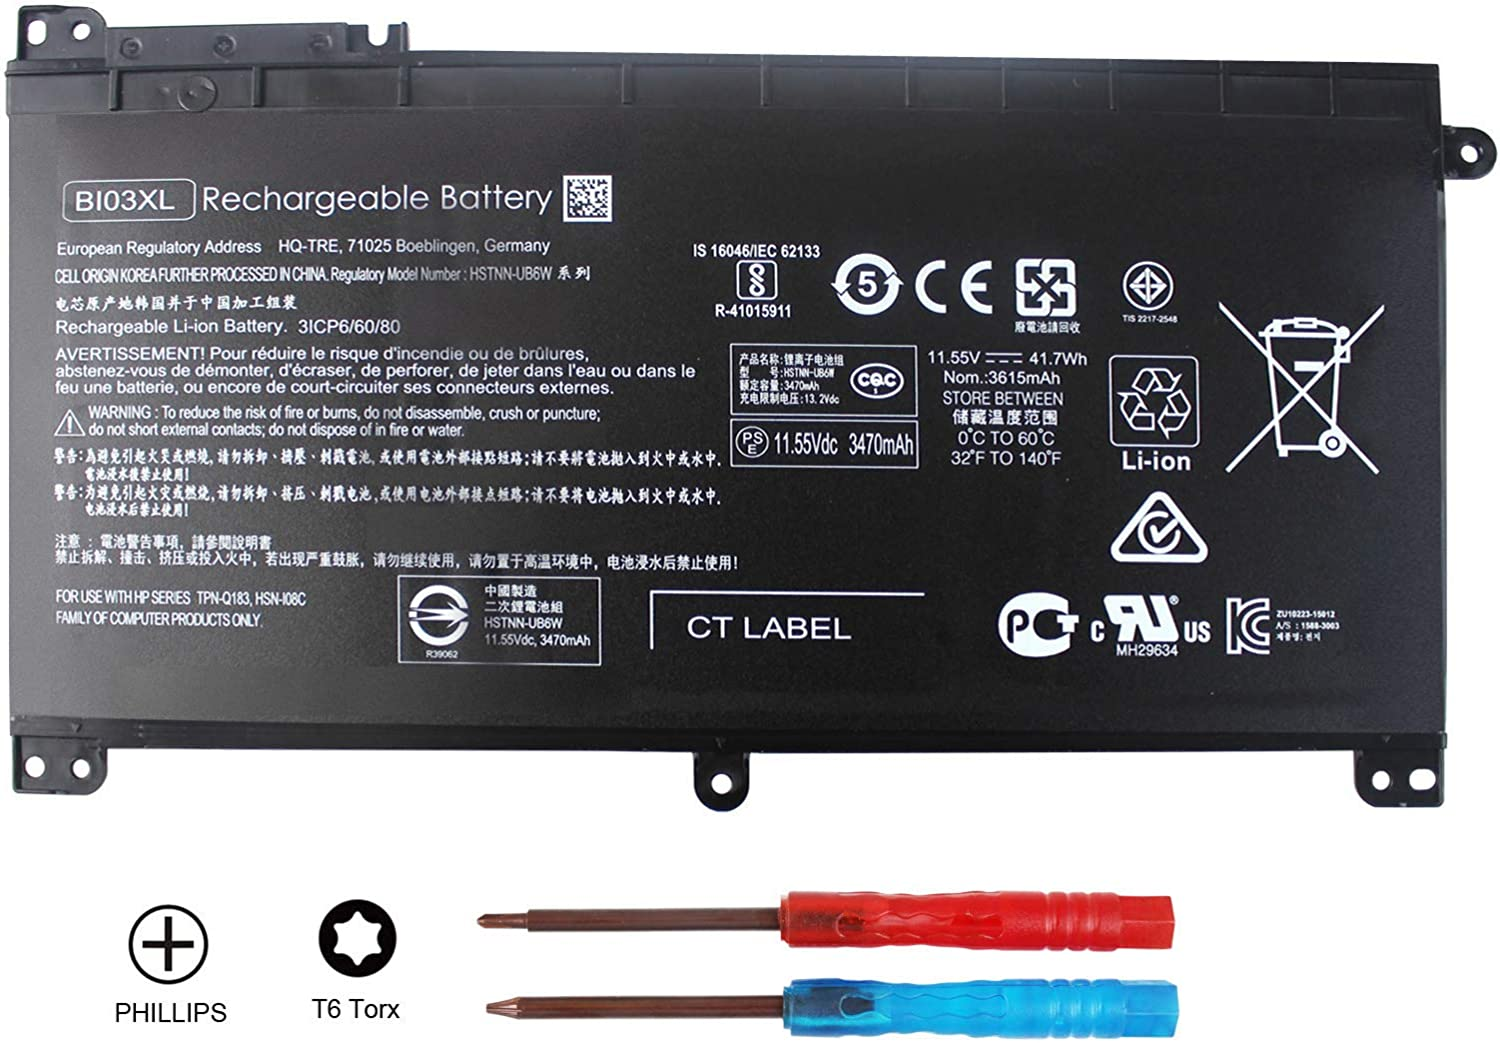 Shareway BI03XL ON03XL Laptop Battery Compatible with HP Pavilion X360 M3-U M3-U001DX M3-U103DX 13-U 13-U100TU 13-U113TU Stream 14-ax 14-ax020wm 14-ax040wm HSTNN-UB6W TPN-W118 843537-541